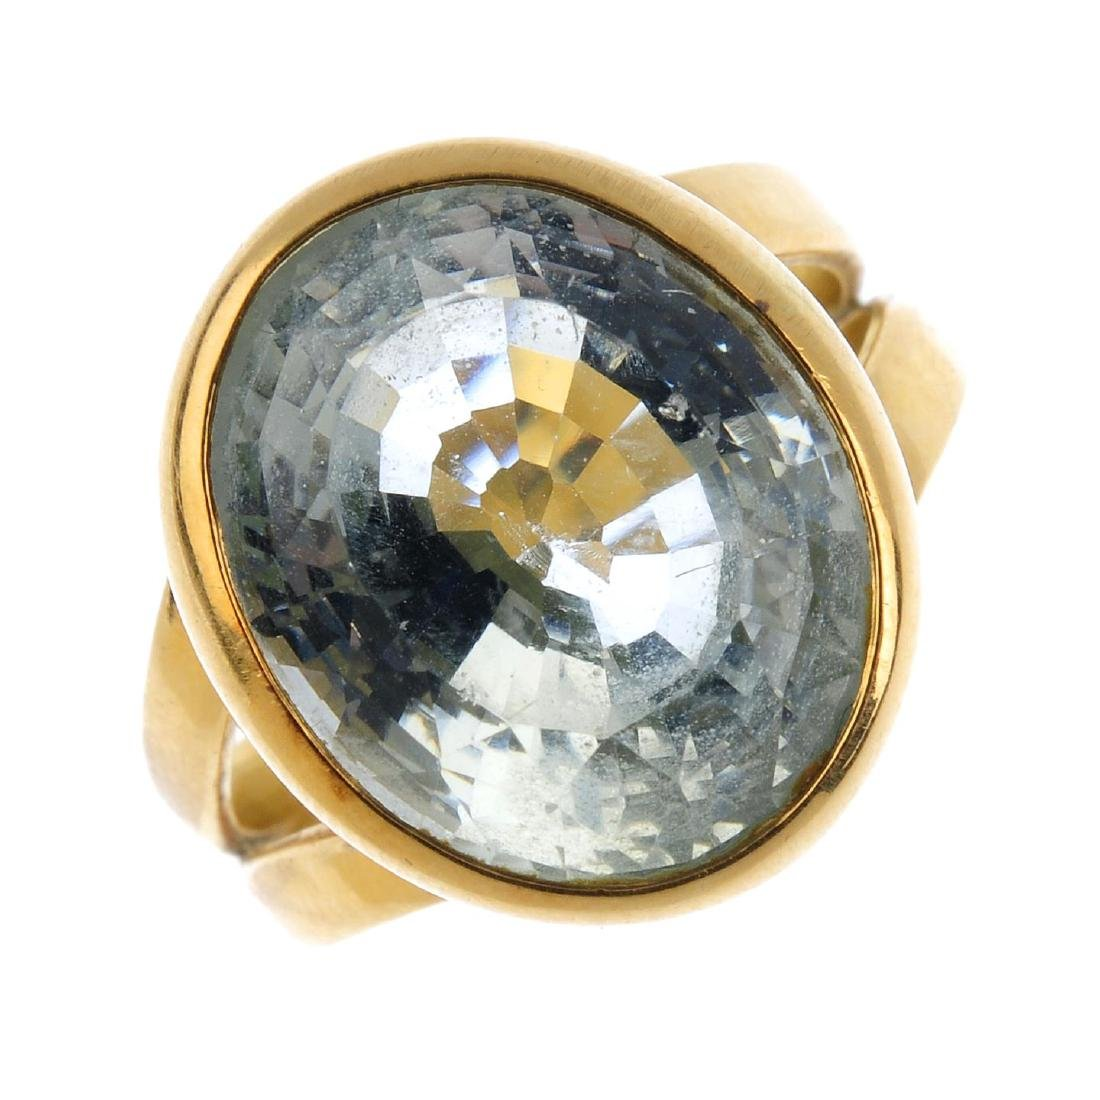 An 18ct gold aquamarine ring. The oval-shape